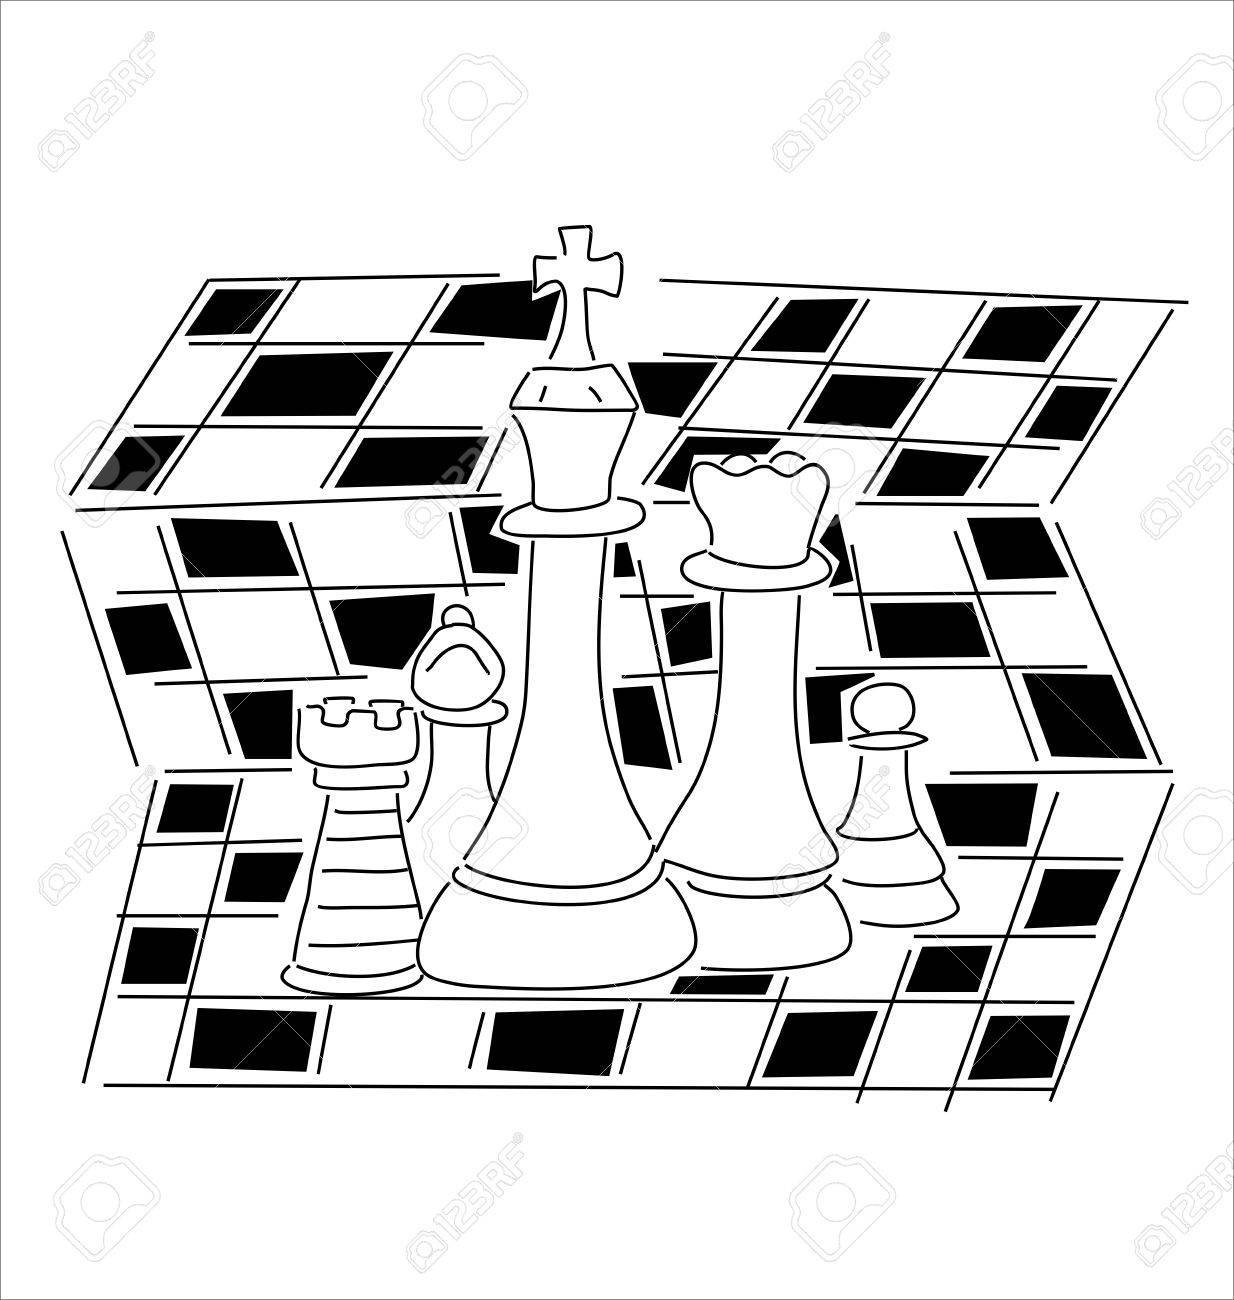 Chess clipart black white jpg black and white library Chess clipart black white 5 » Clipart Portal jpg black and white library